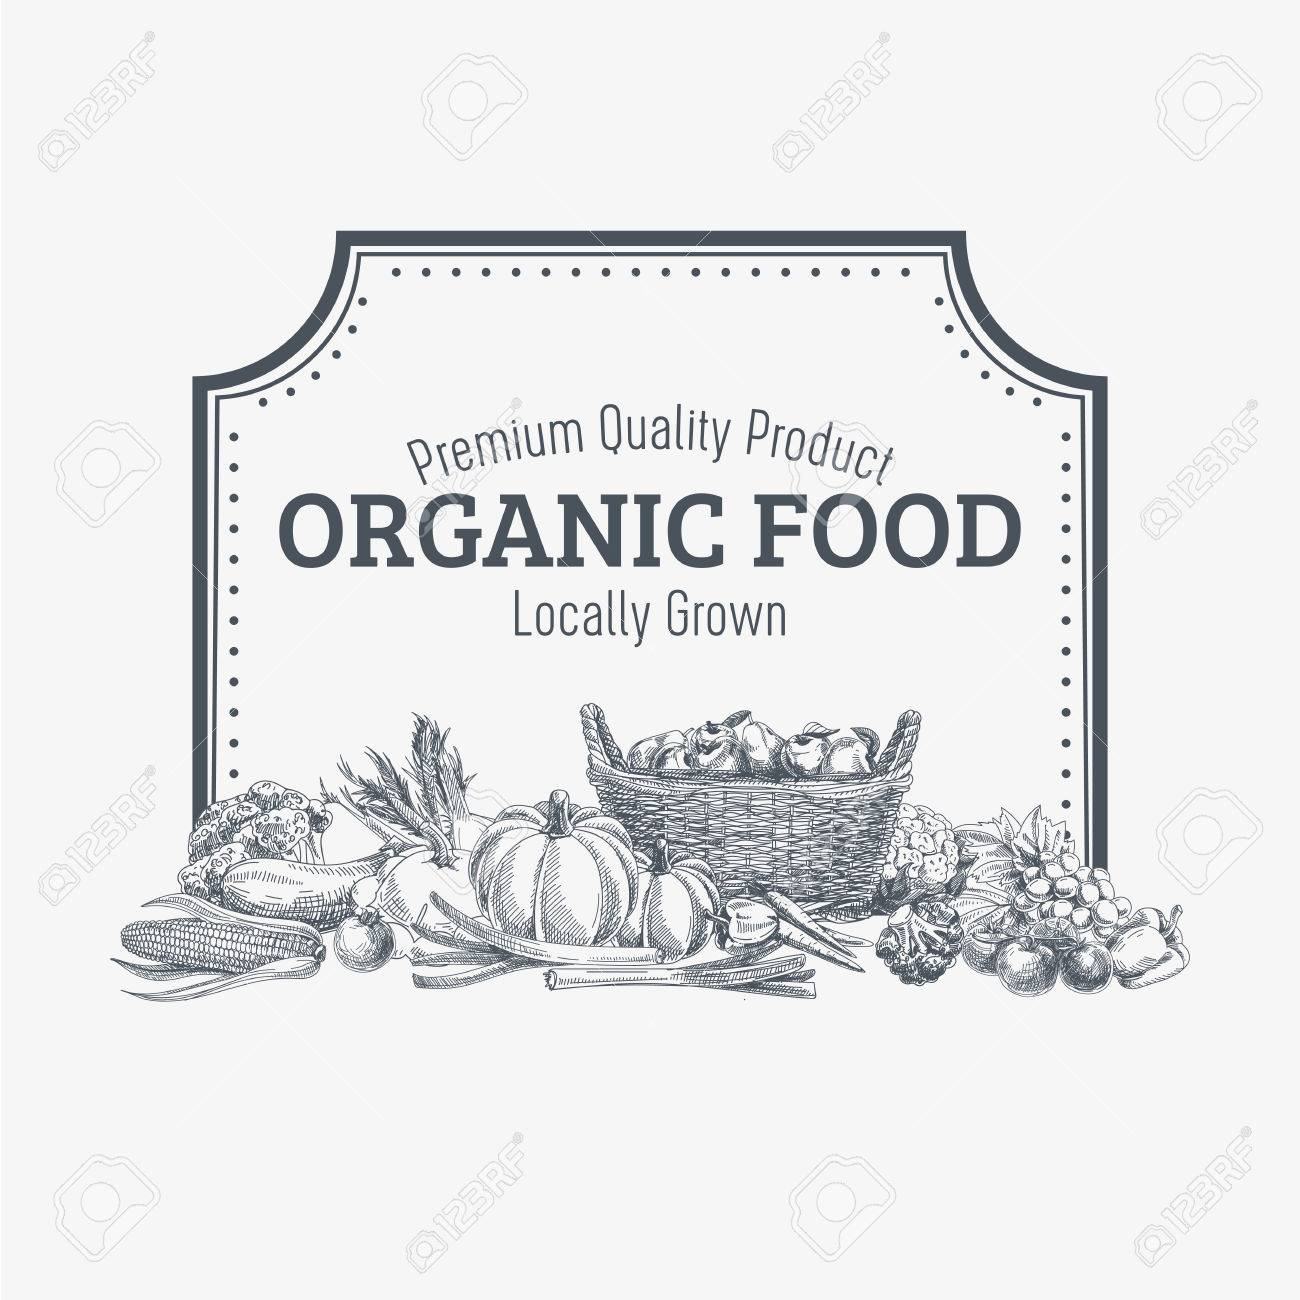 Vector background with hand drawn organic food. Vegetable and fruits spices illustration. - 49425287